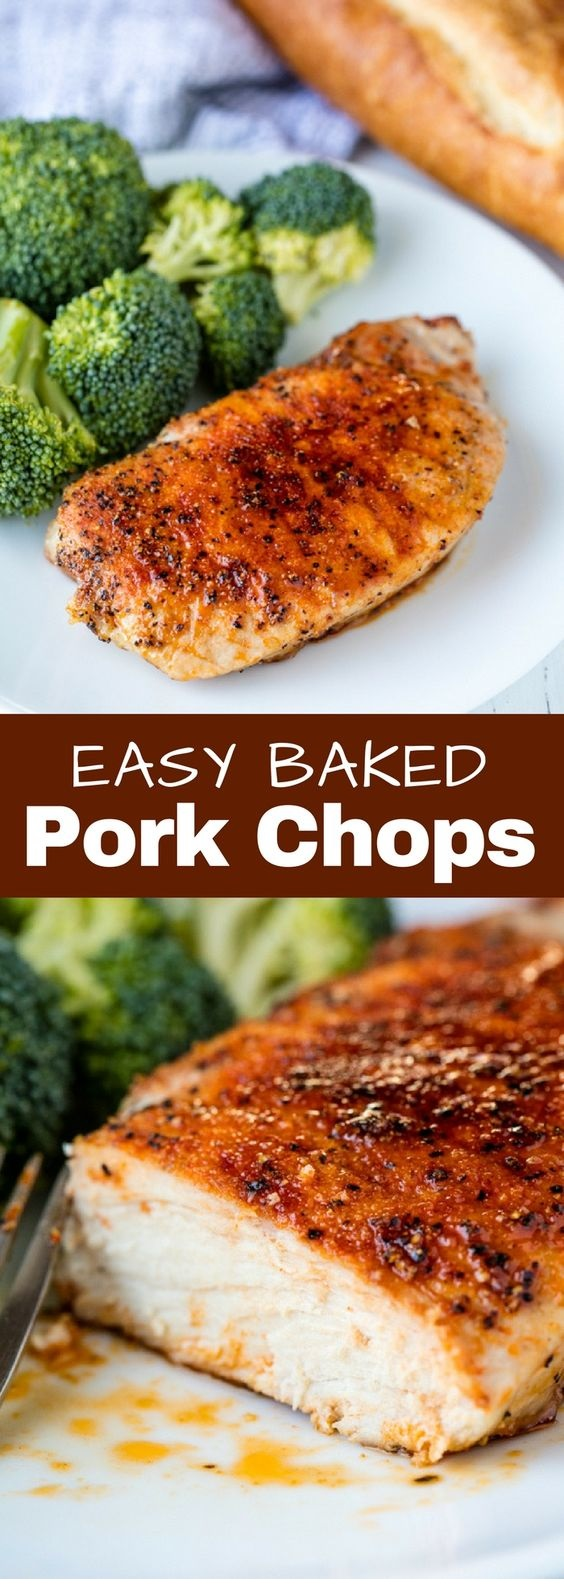 Easy Baked Pork Chops